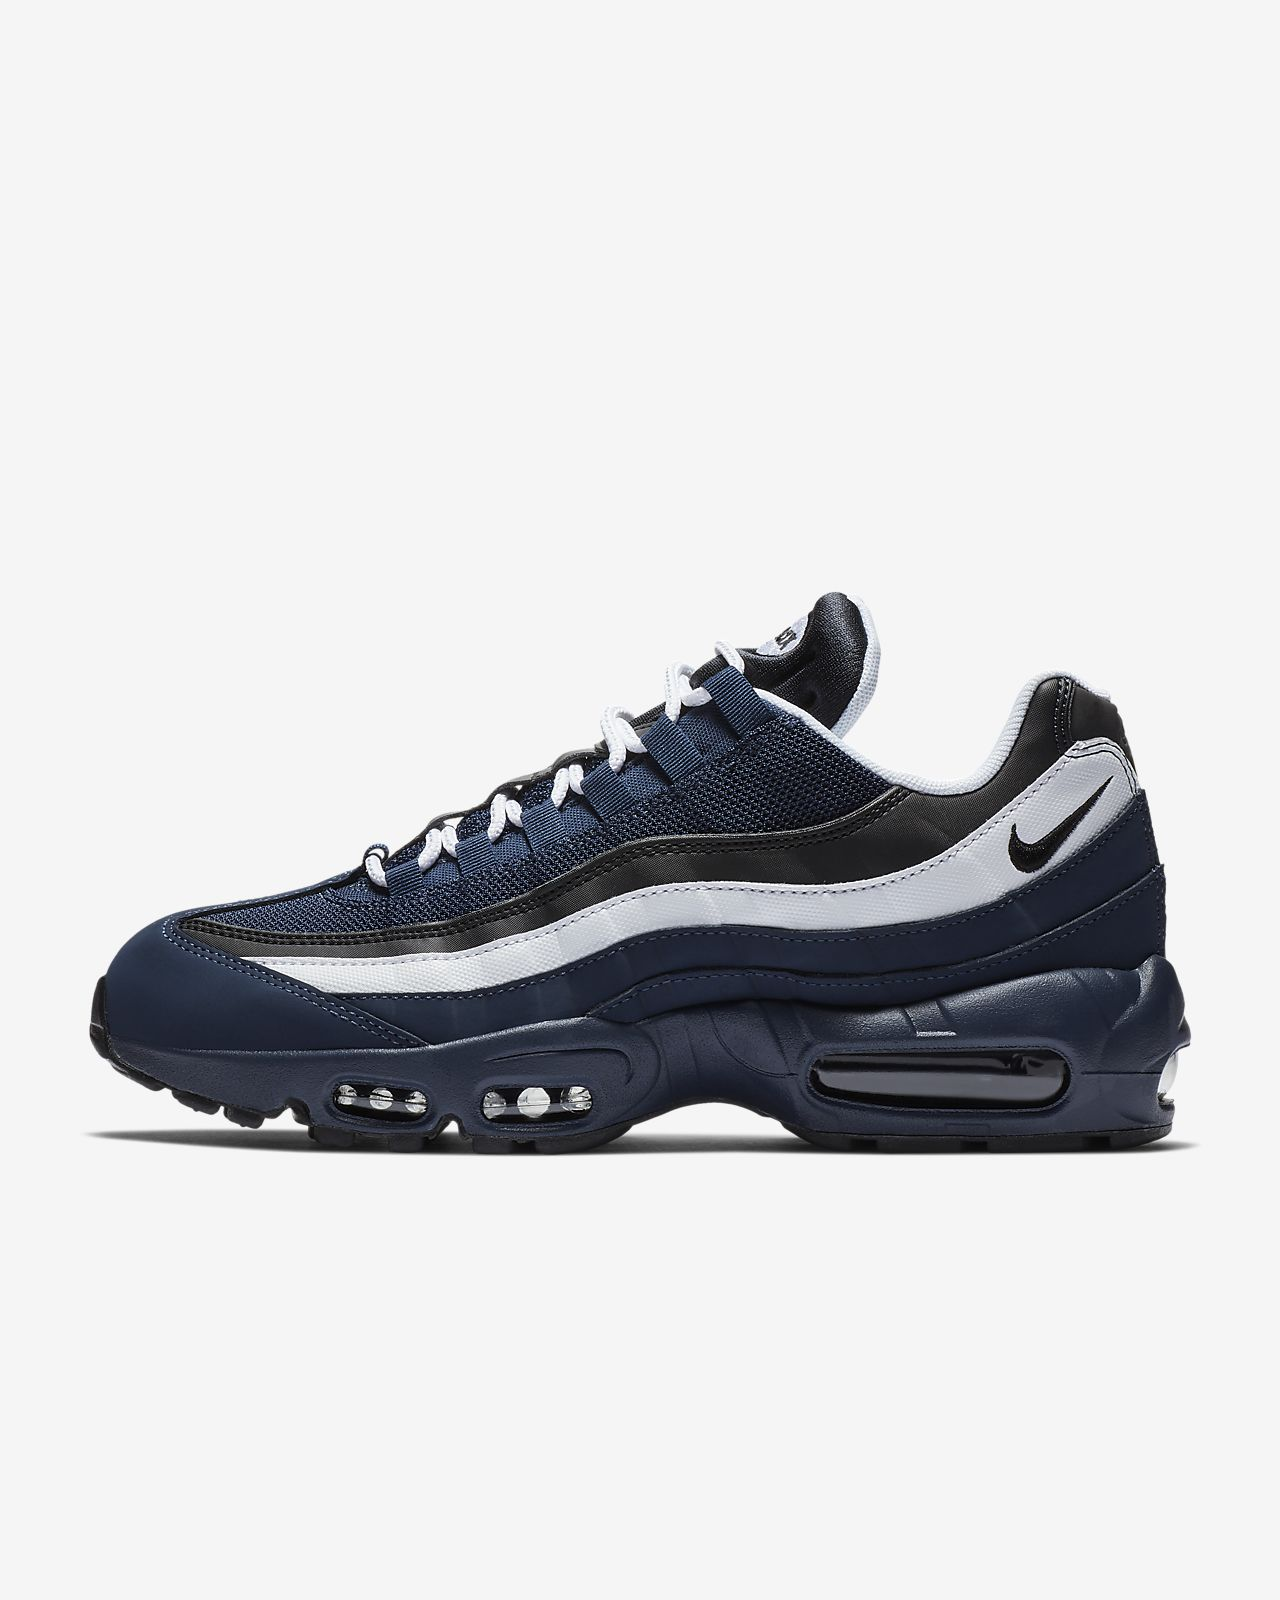 official photos 0caed e1d3a Nike Air Max 95 Essential